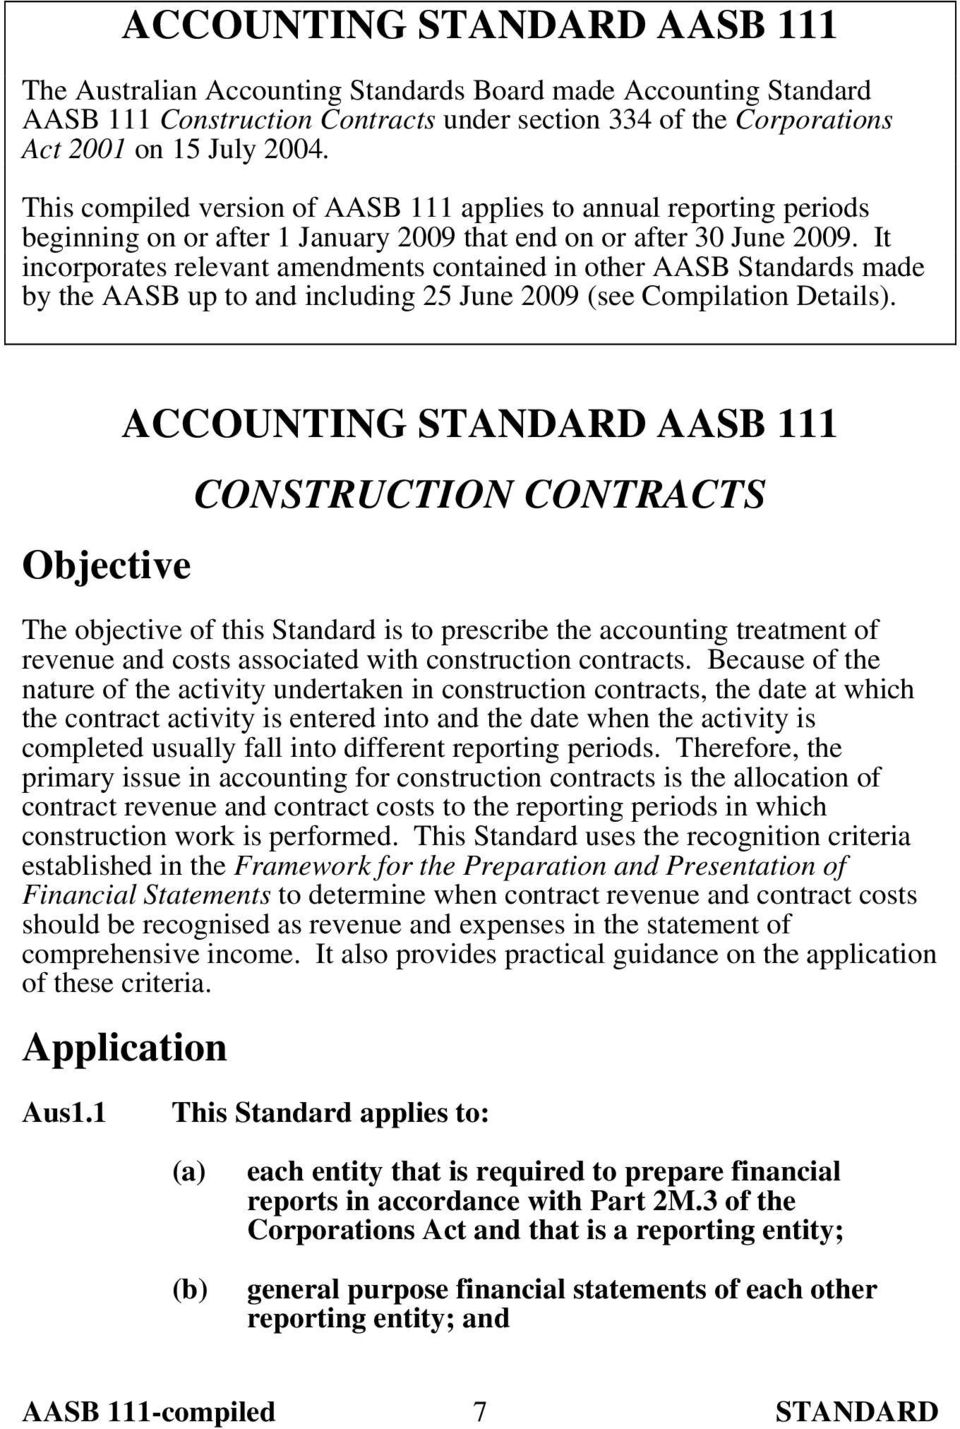 It incorporates relevant amendments contained in other AASB Standards made by the AASB up to and including 25 June 2009 (see Compilation Details).